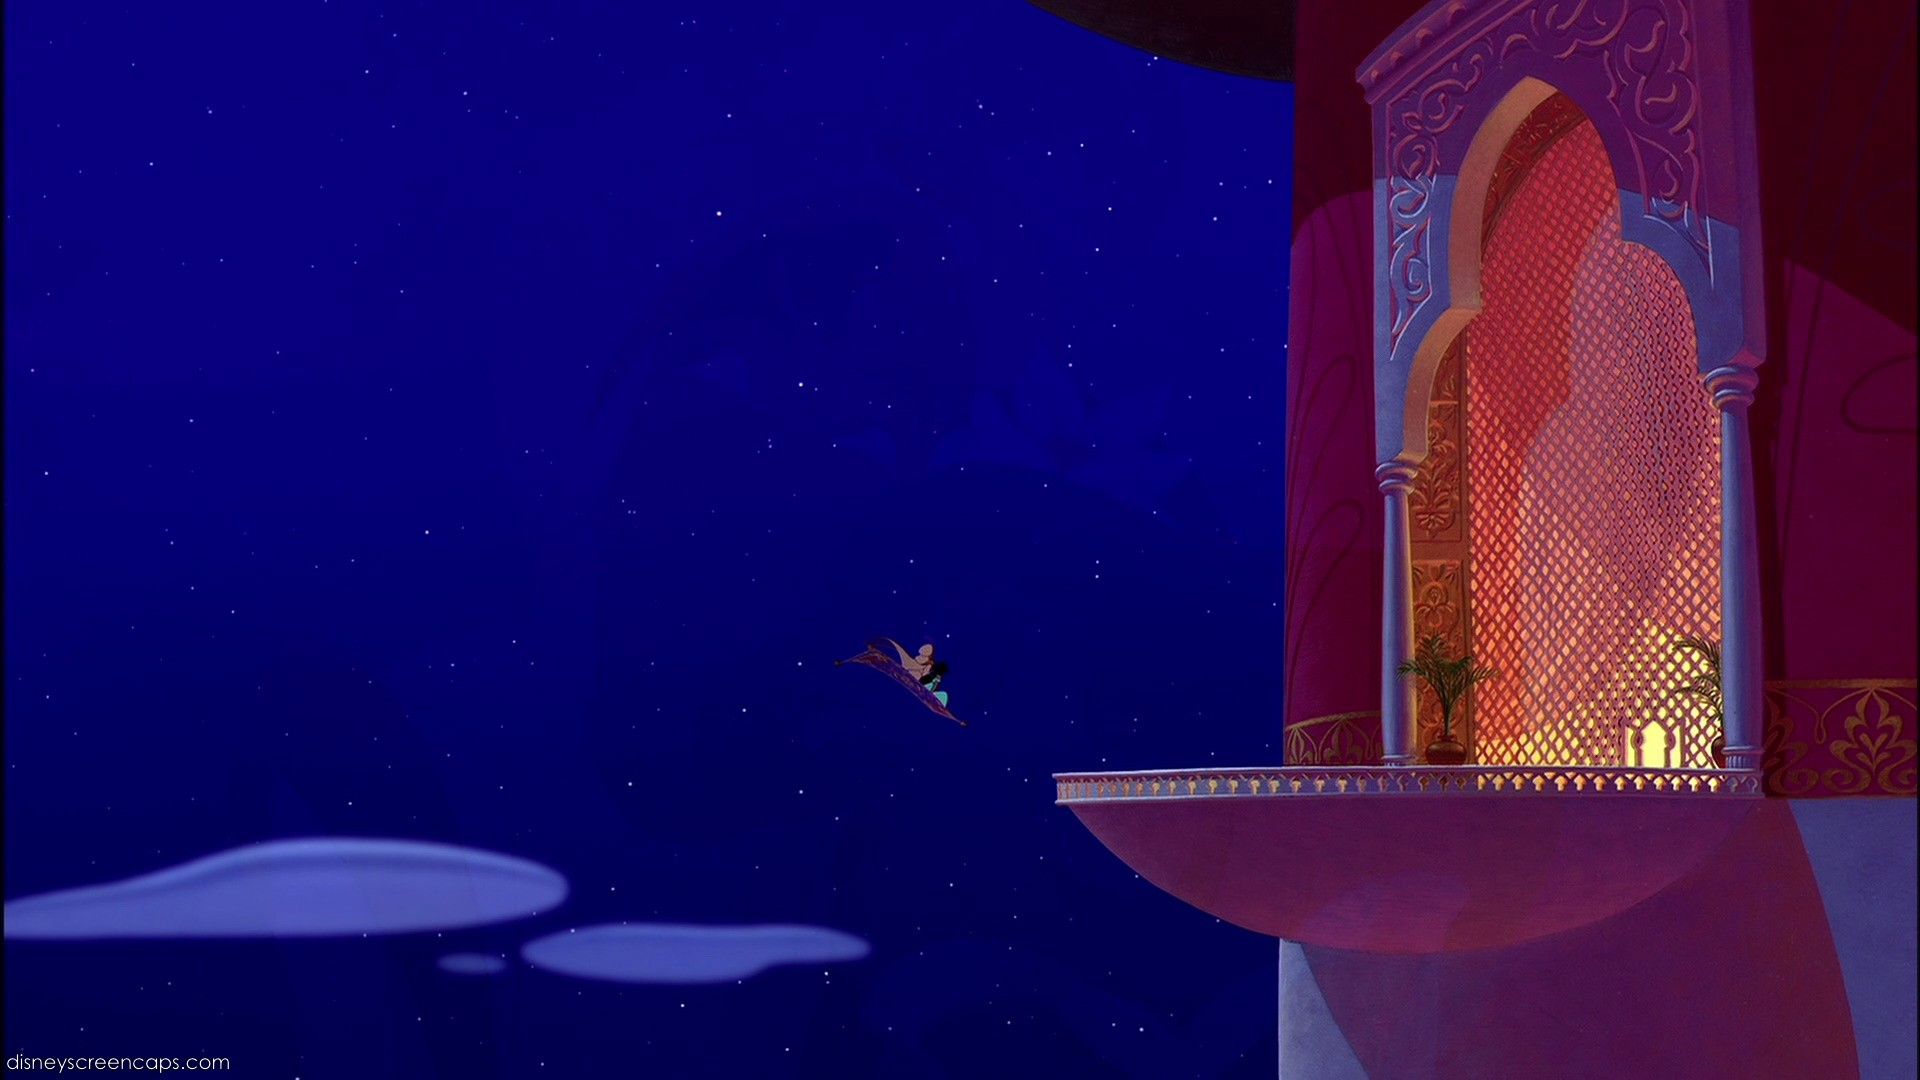 Empty Backdrop From Aladdin Disney Crossover Image